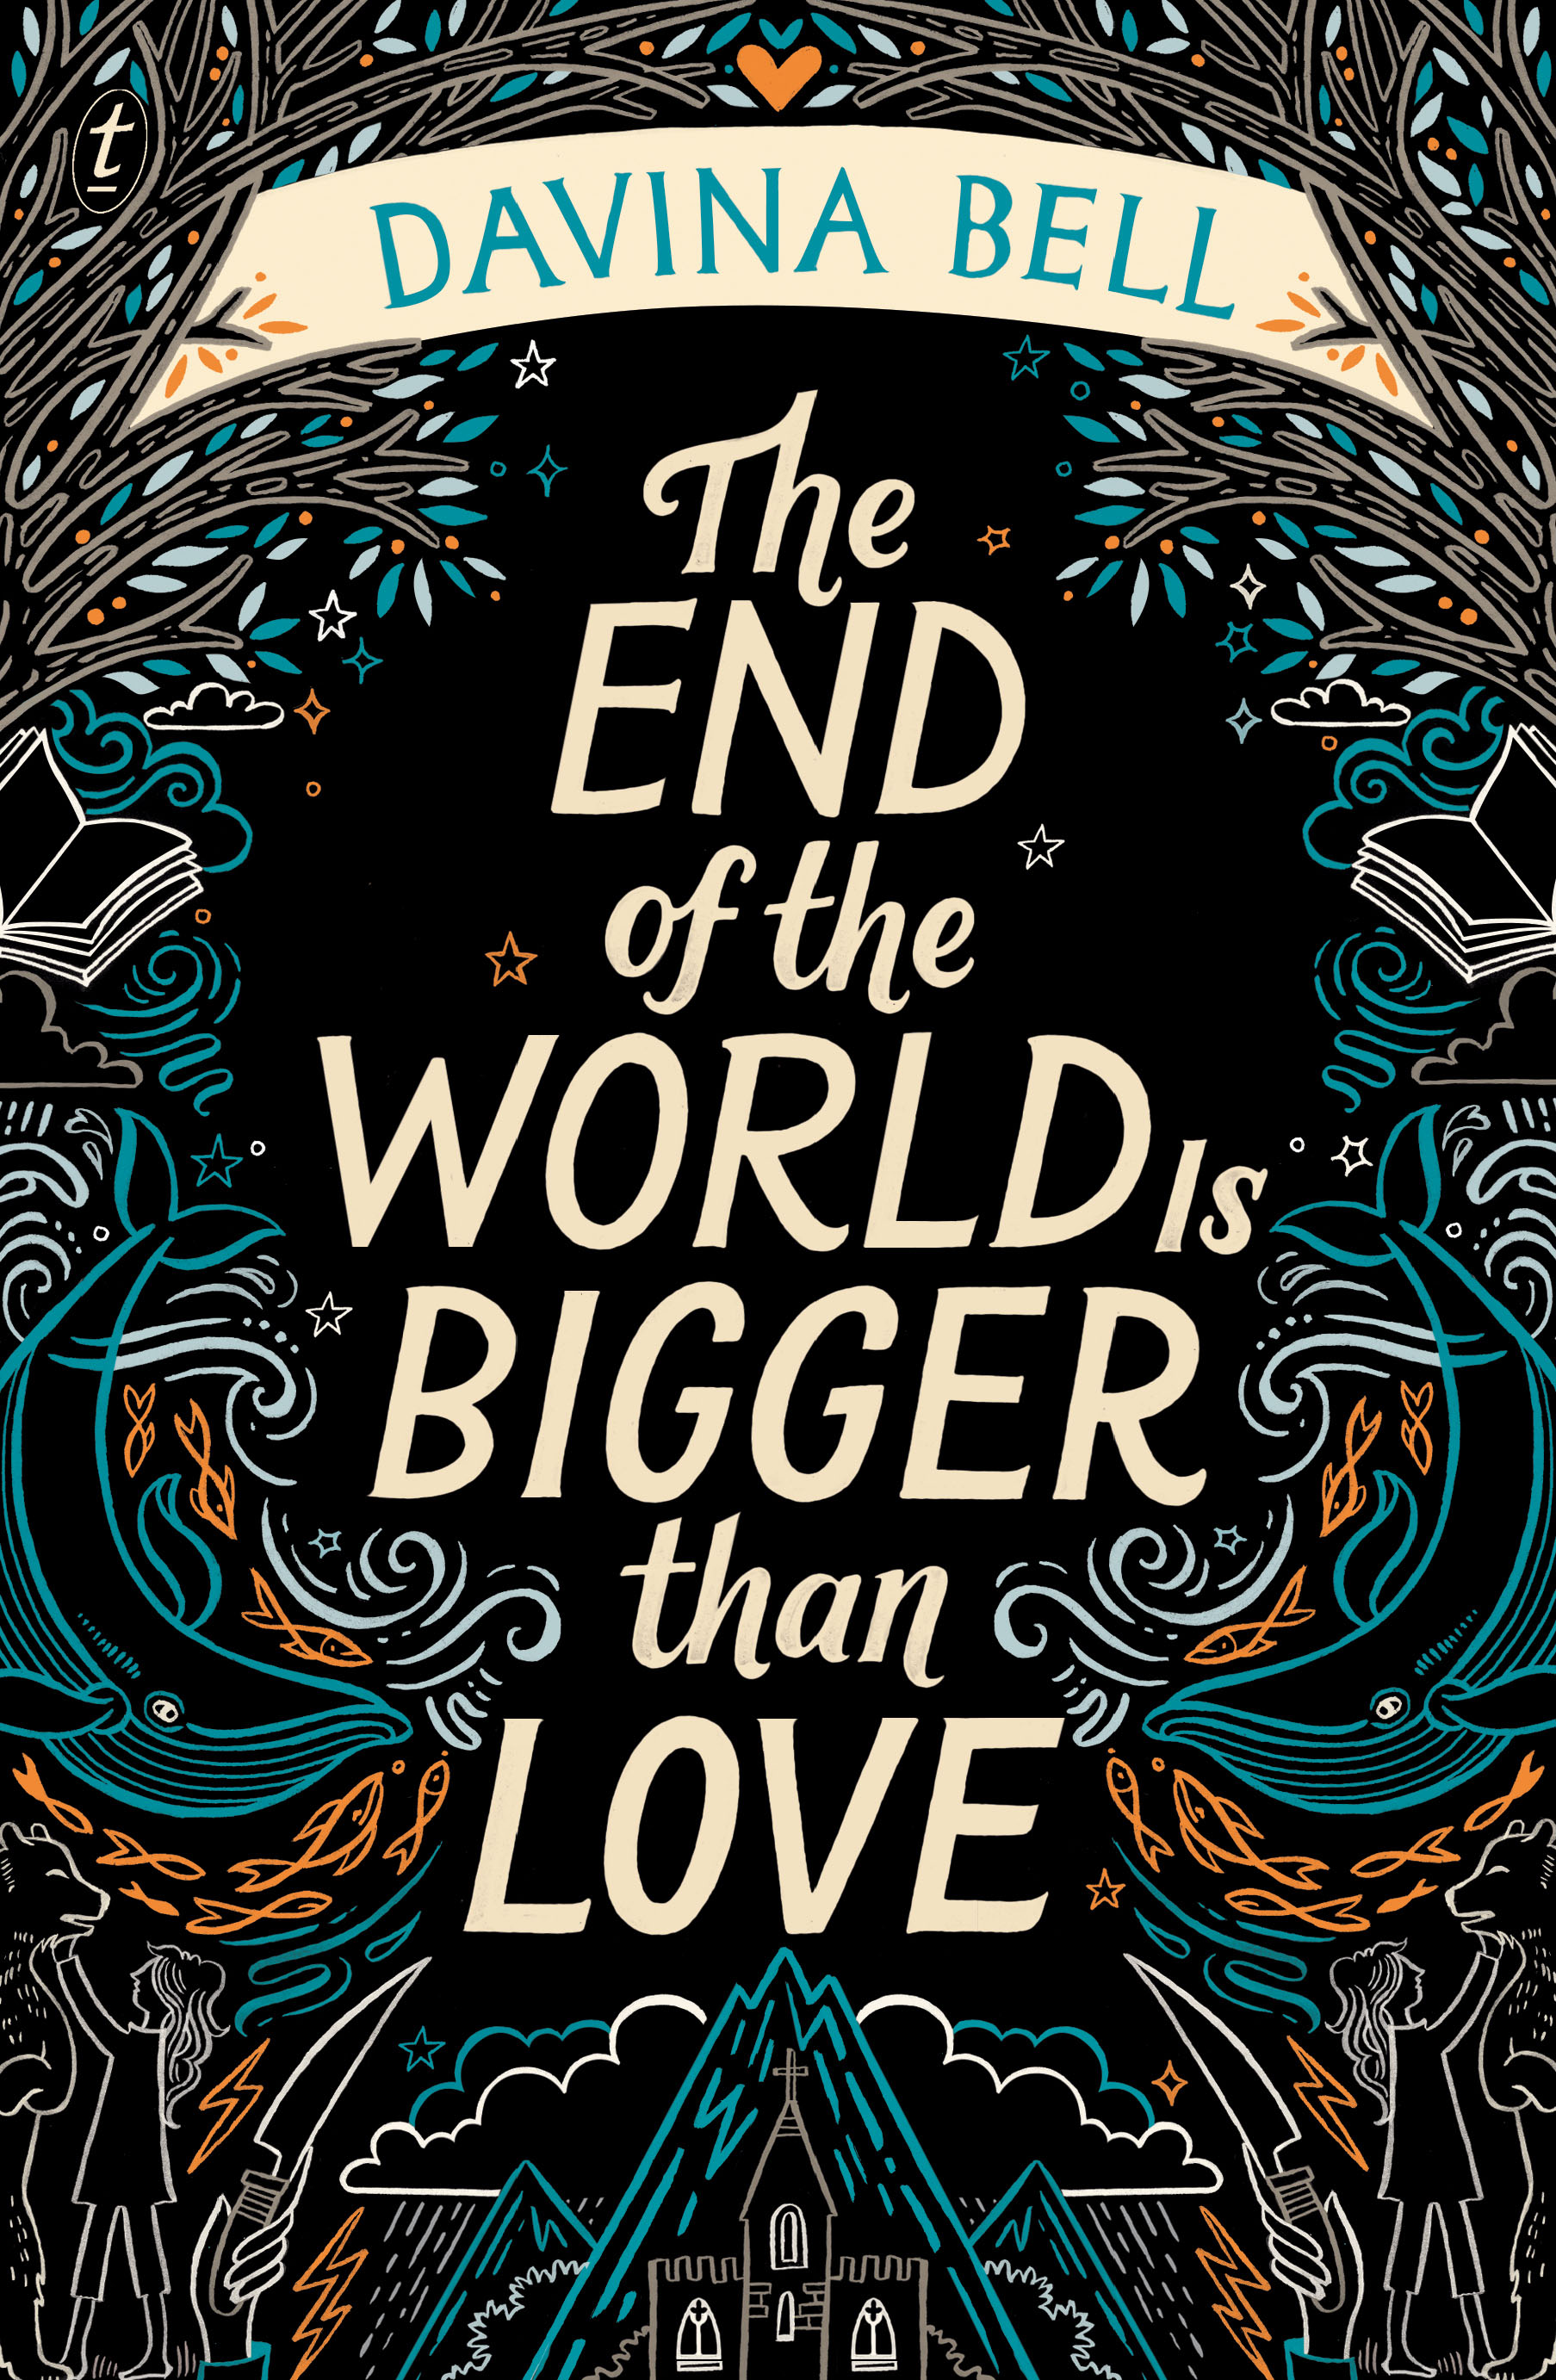 Cover image of 'The End of the World is Bigger Than Love' by Davina Bell